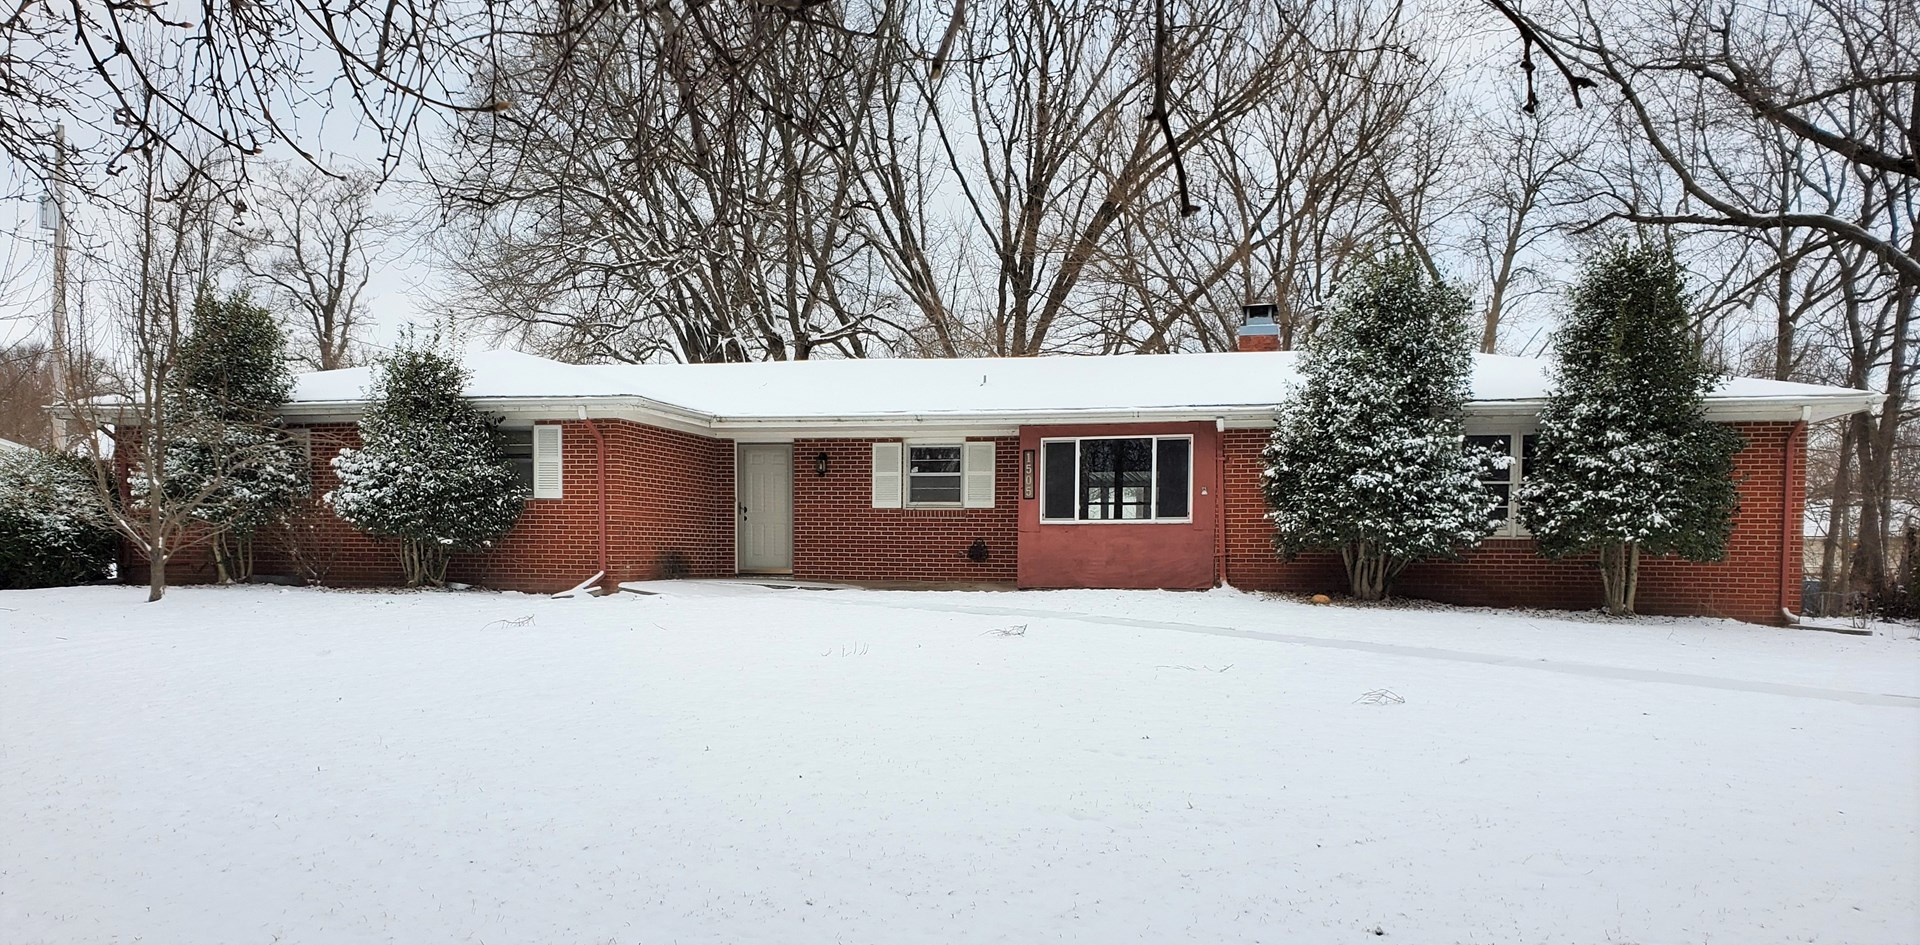 3 Bed, 1.5 Bath Home For Sale Clinton Mo